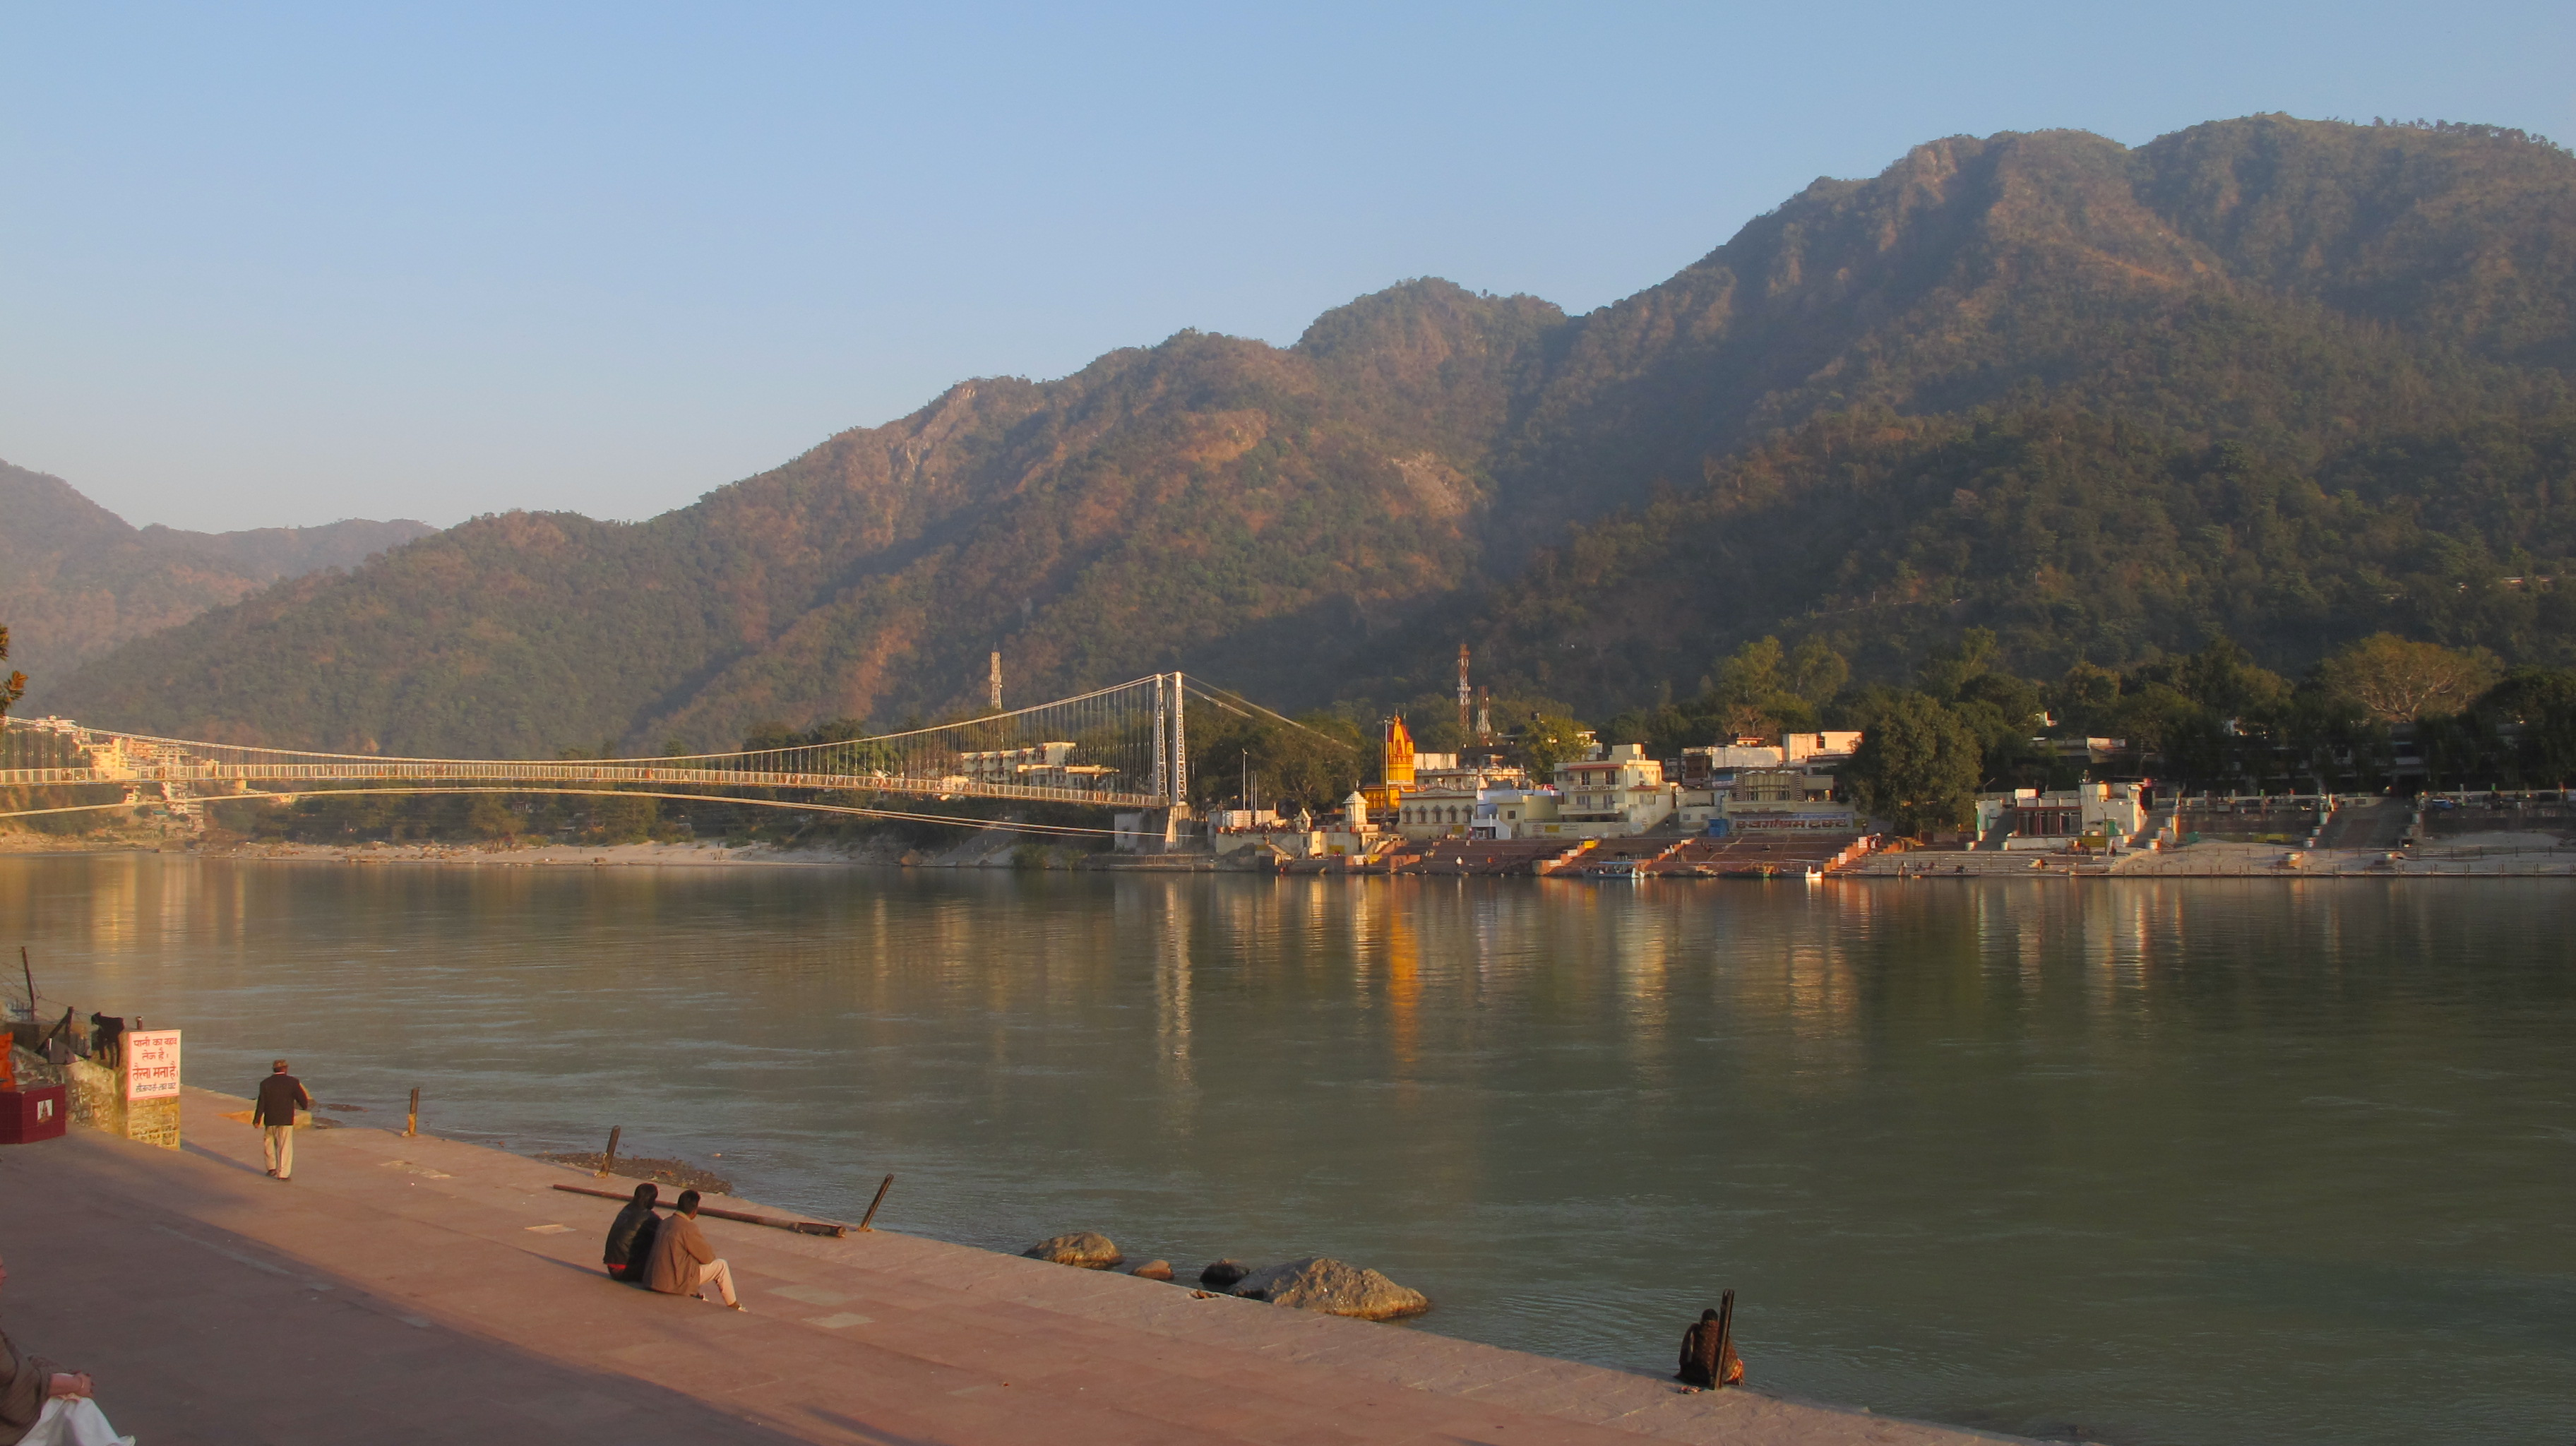 Ram Jhula Bridge in Rishikesh